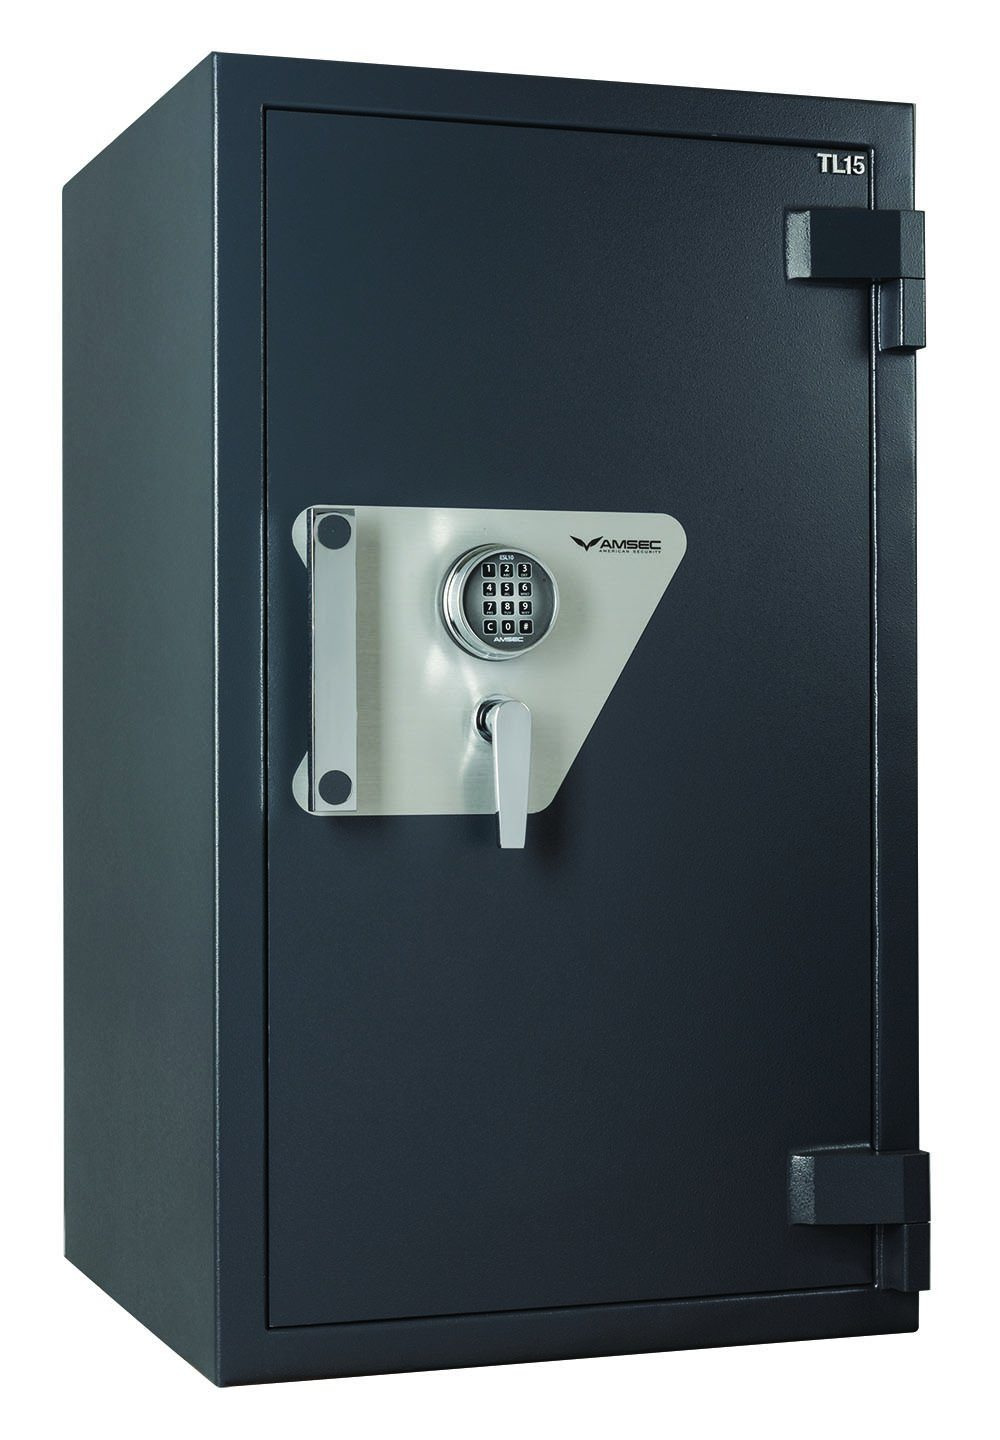 High Security Burglar Fire Safes - AMSEC MAX3820 High Security UL Listed TL-15 Composite Safe